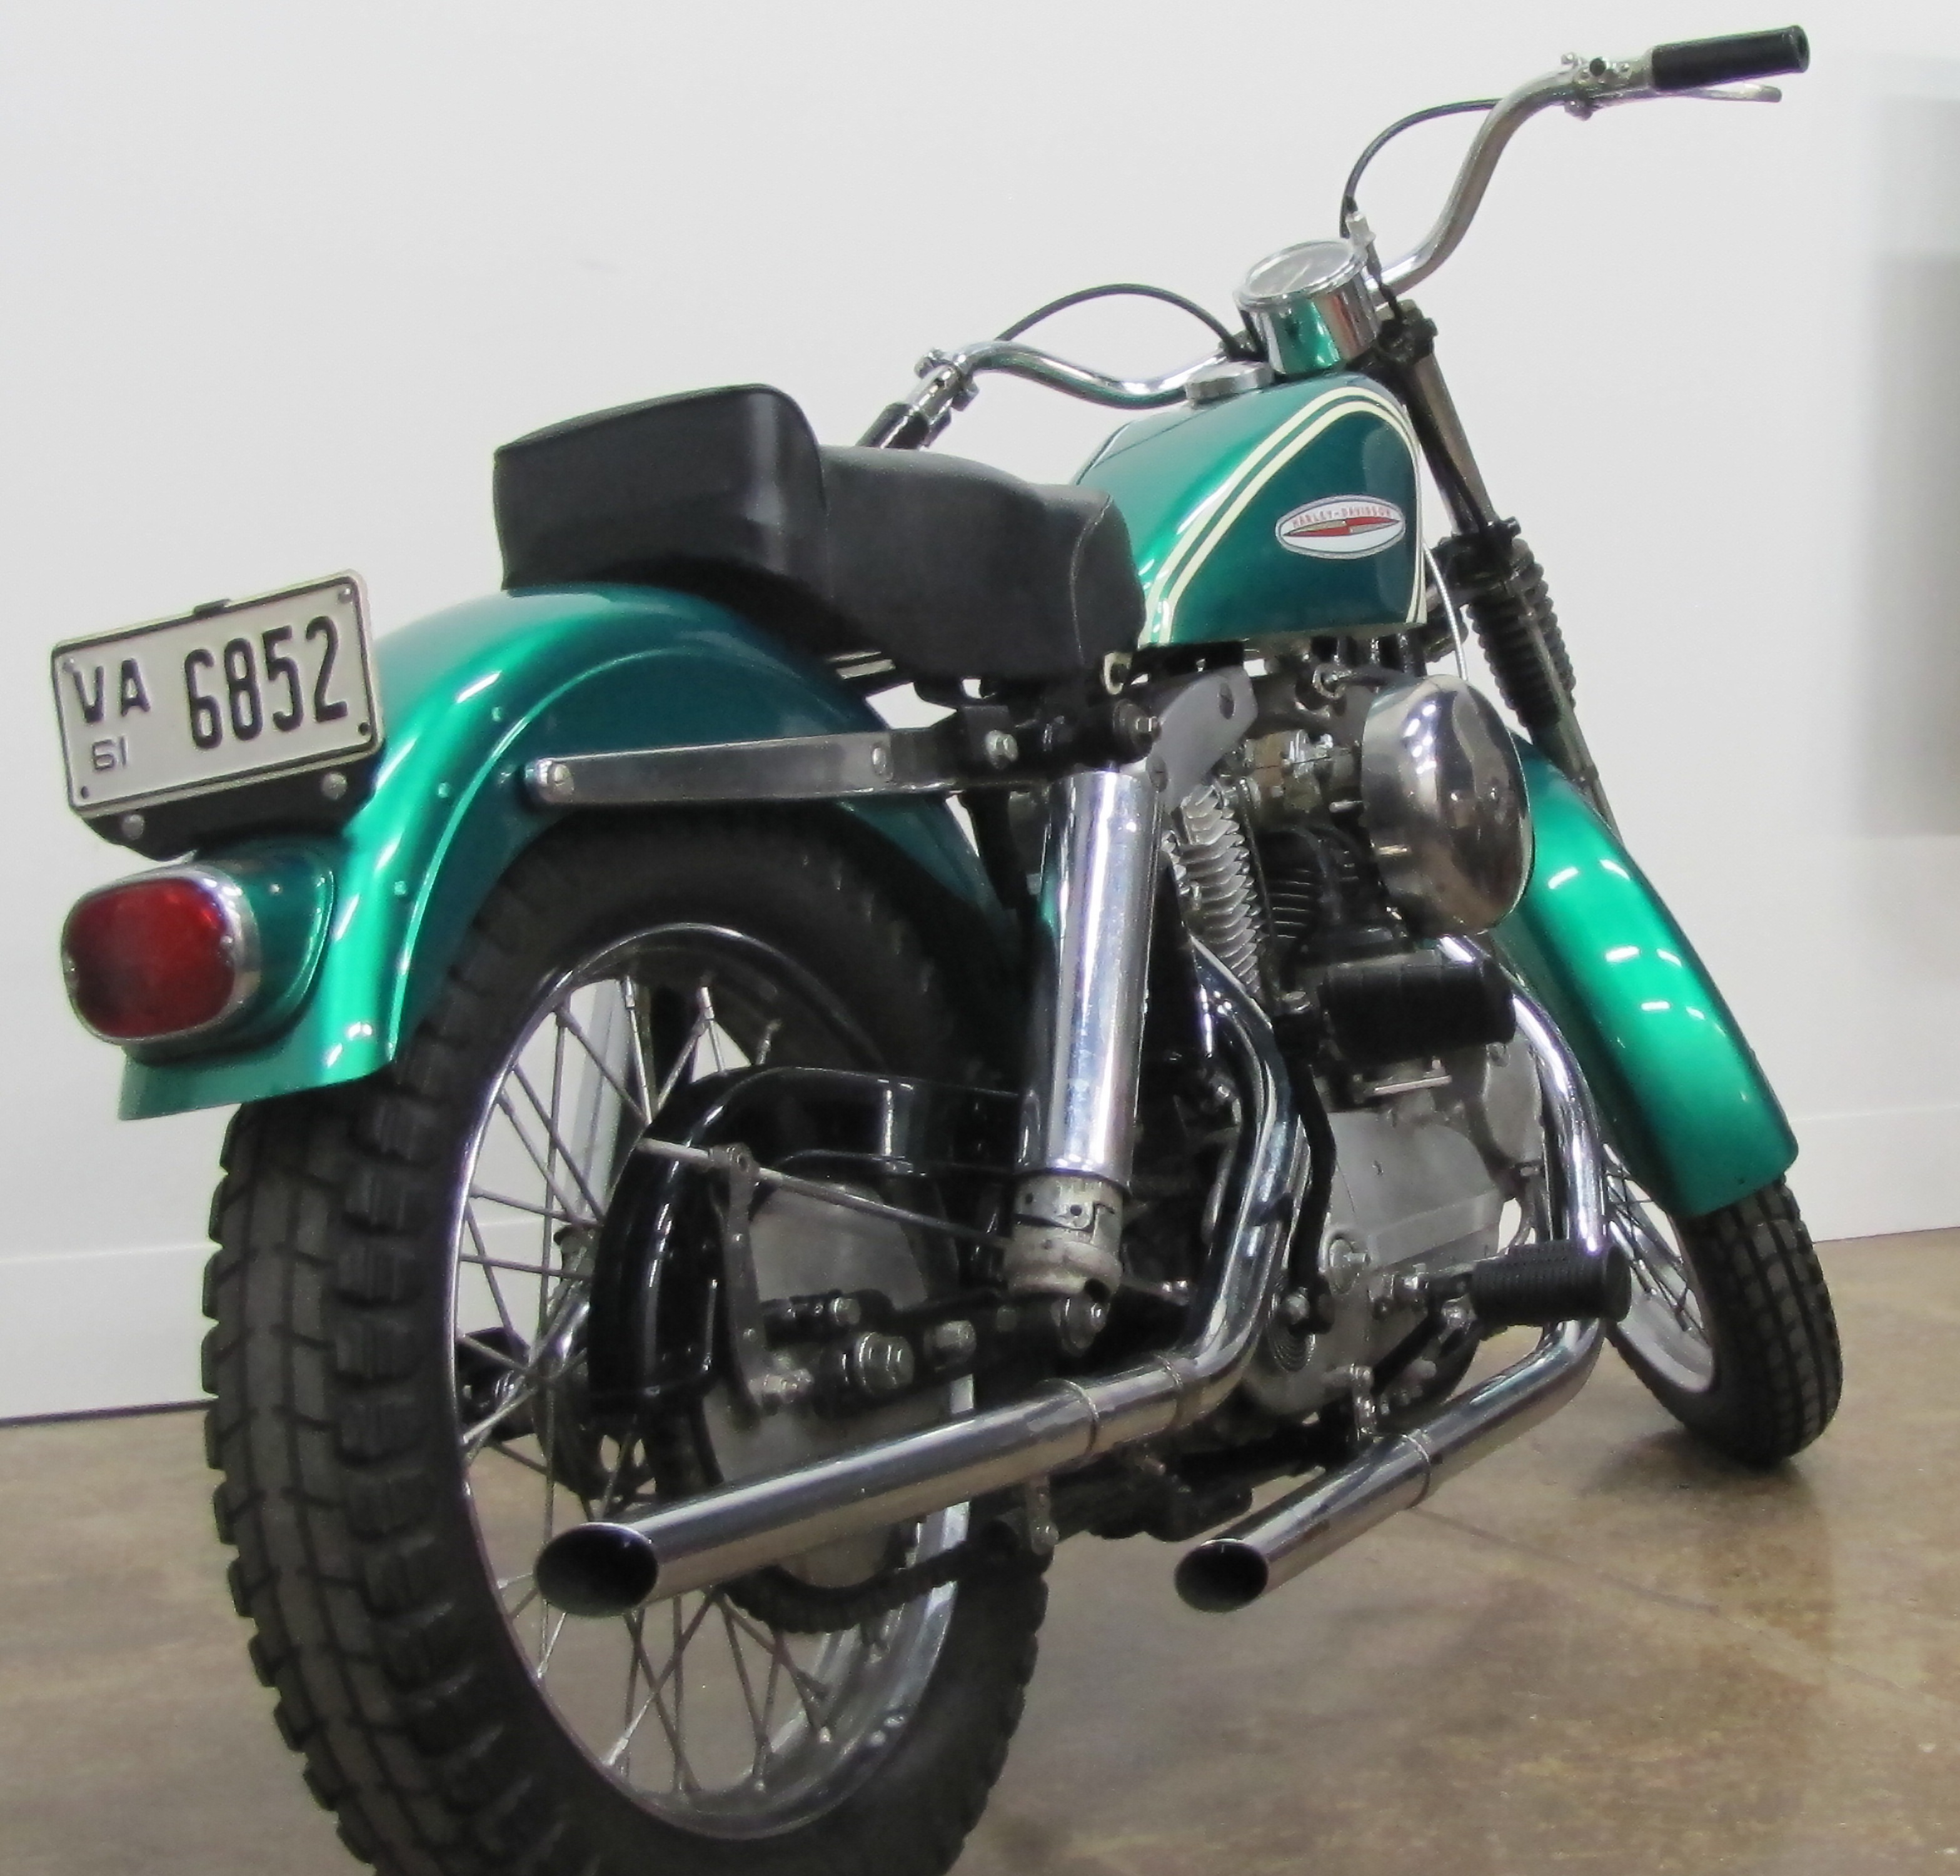 1961-H-D-sportster-xlch_2